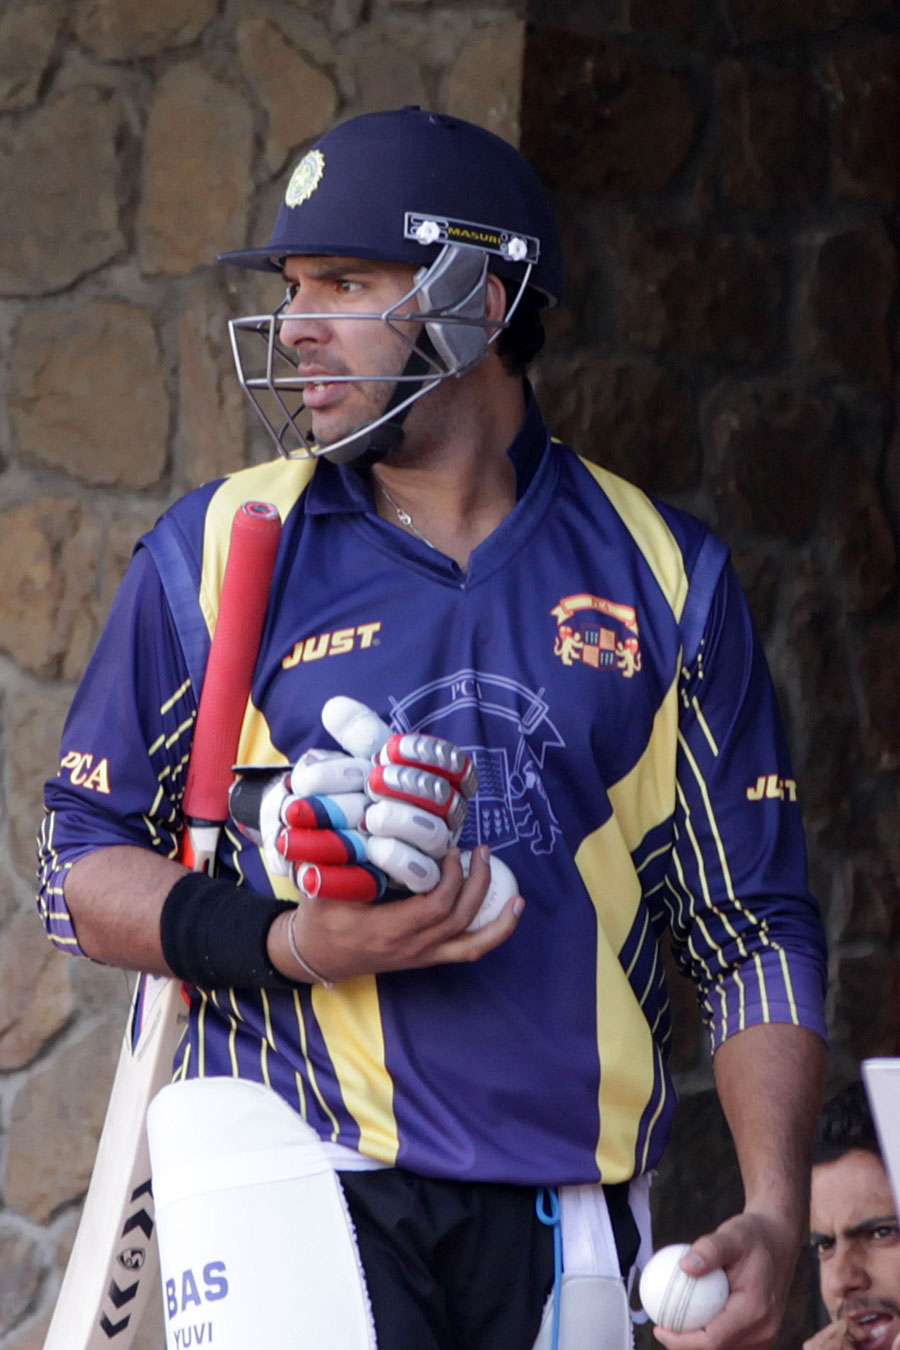 Yuvraj Singh pads up to bat during the Punjab-Haryana match